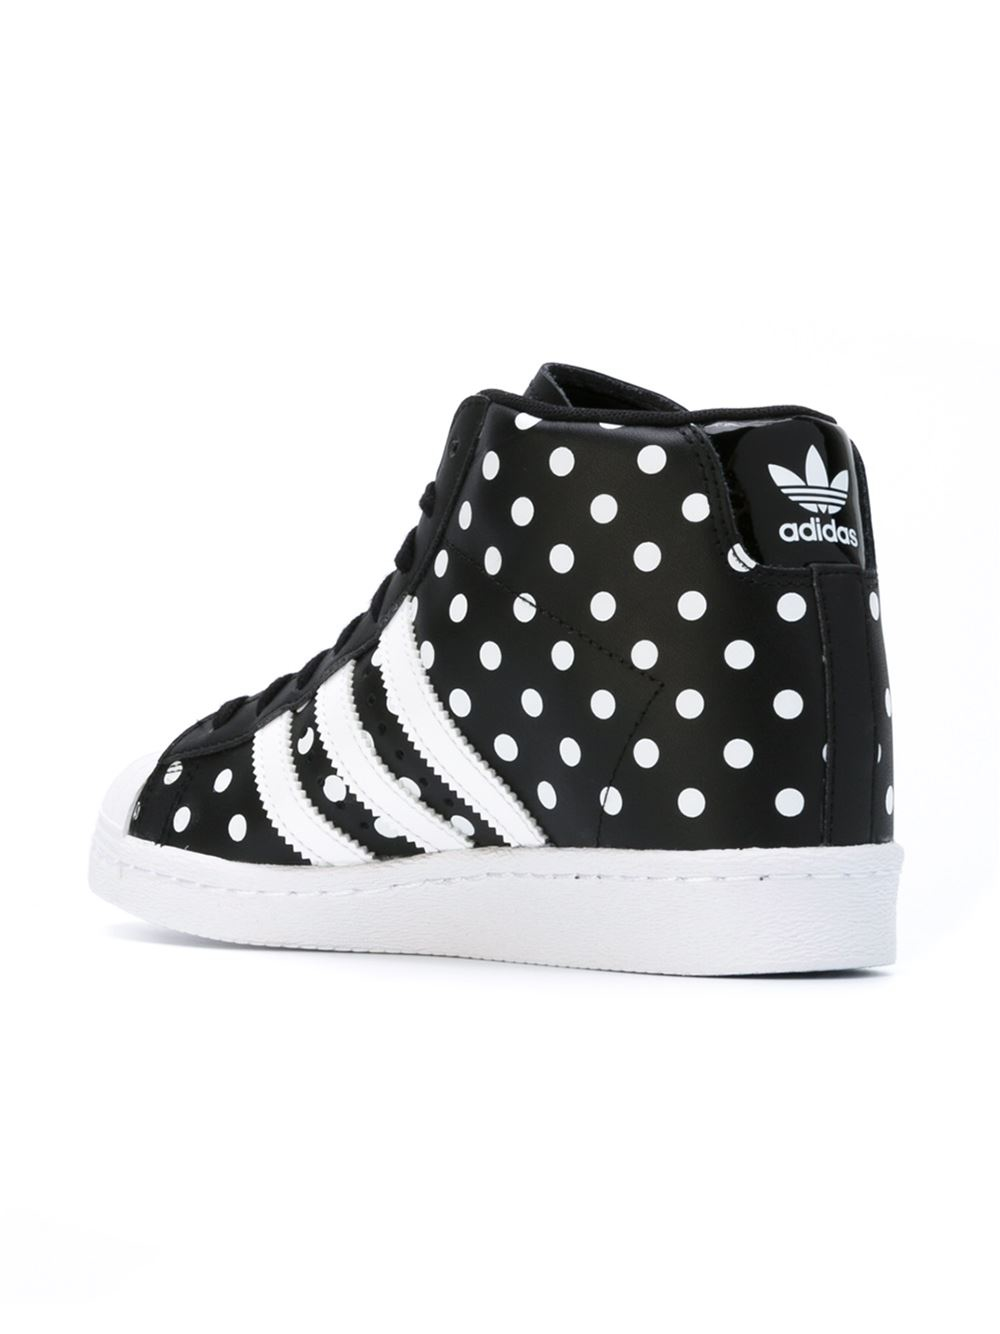 8668c8ed908e ... sweden lyst adidas superstar up hi top sneakers in black 73ab2 12563